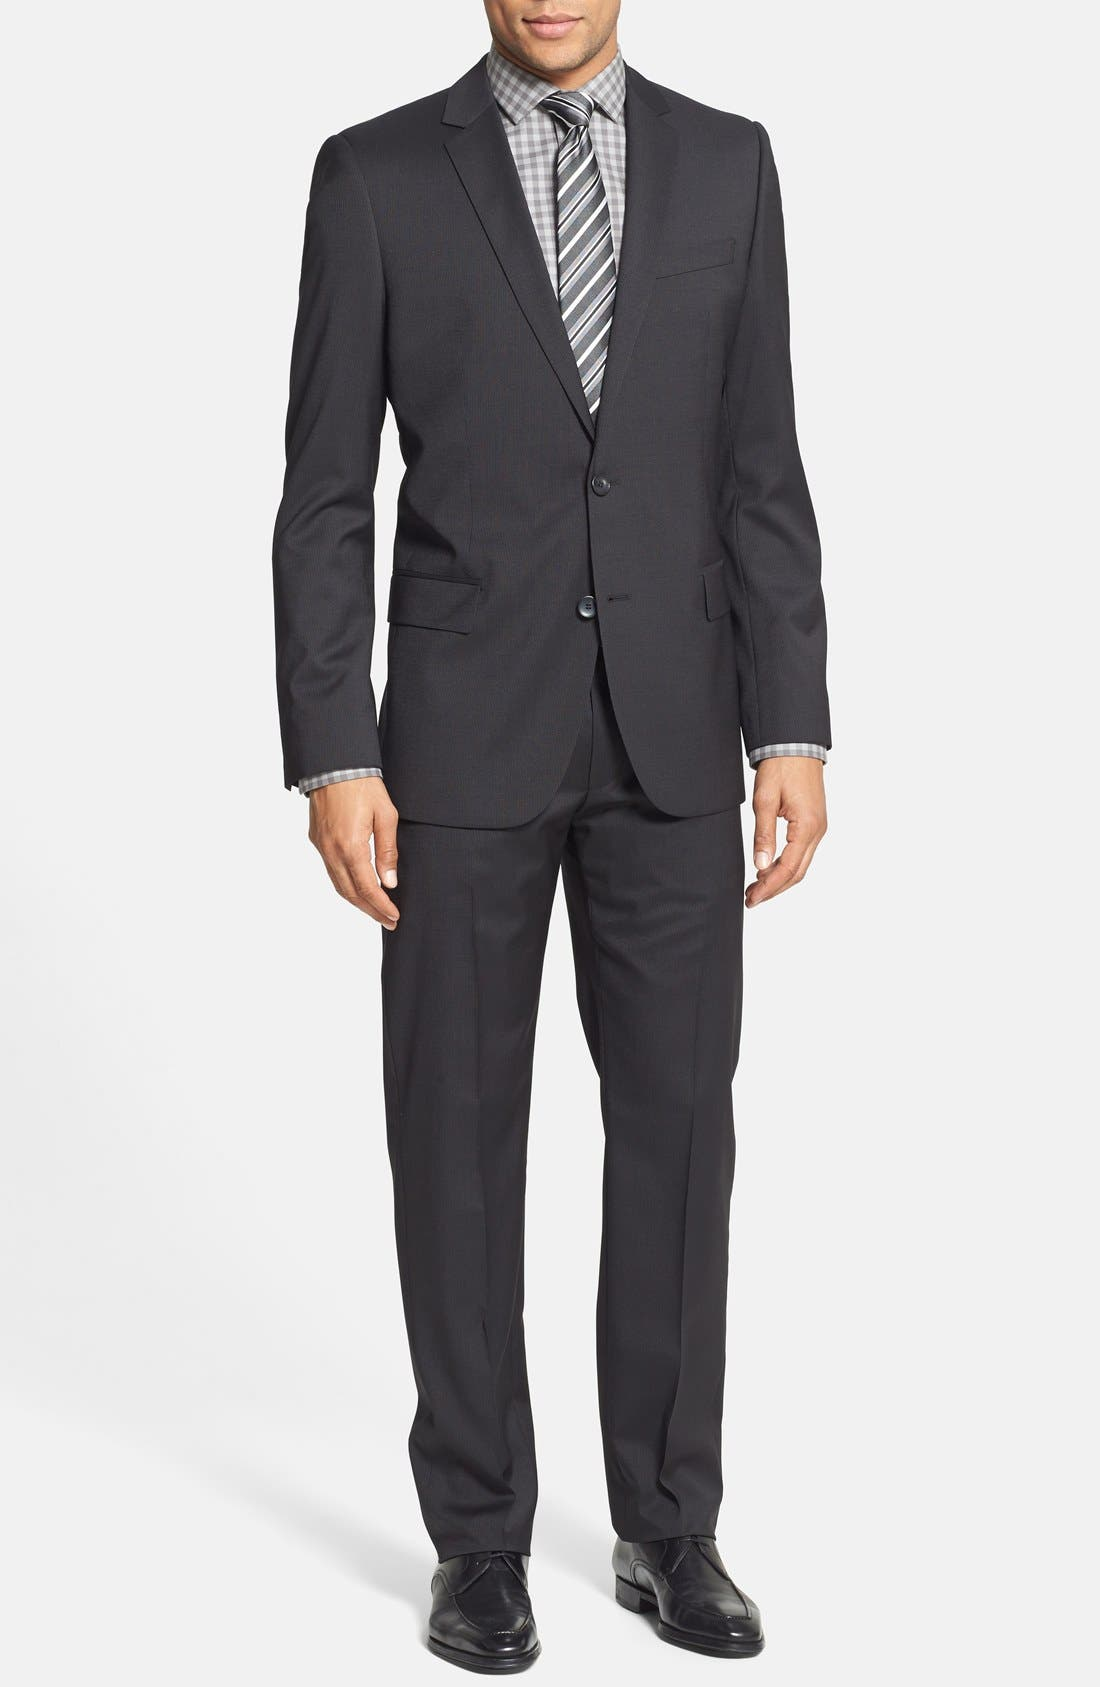 Alternate Image 1 Selected - ANN AMARO/HEISE TRIM FIT SUIT